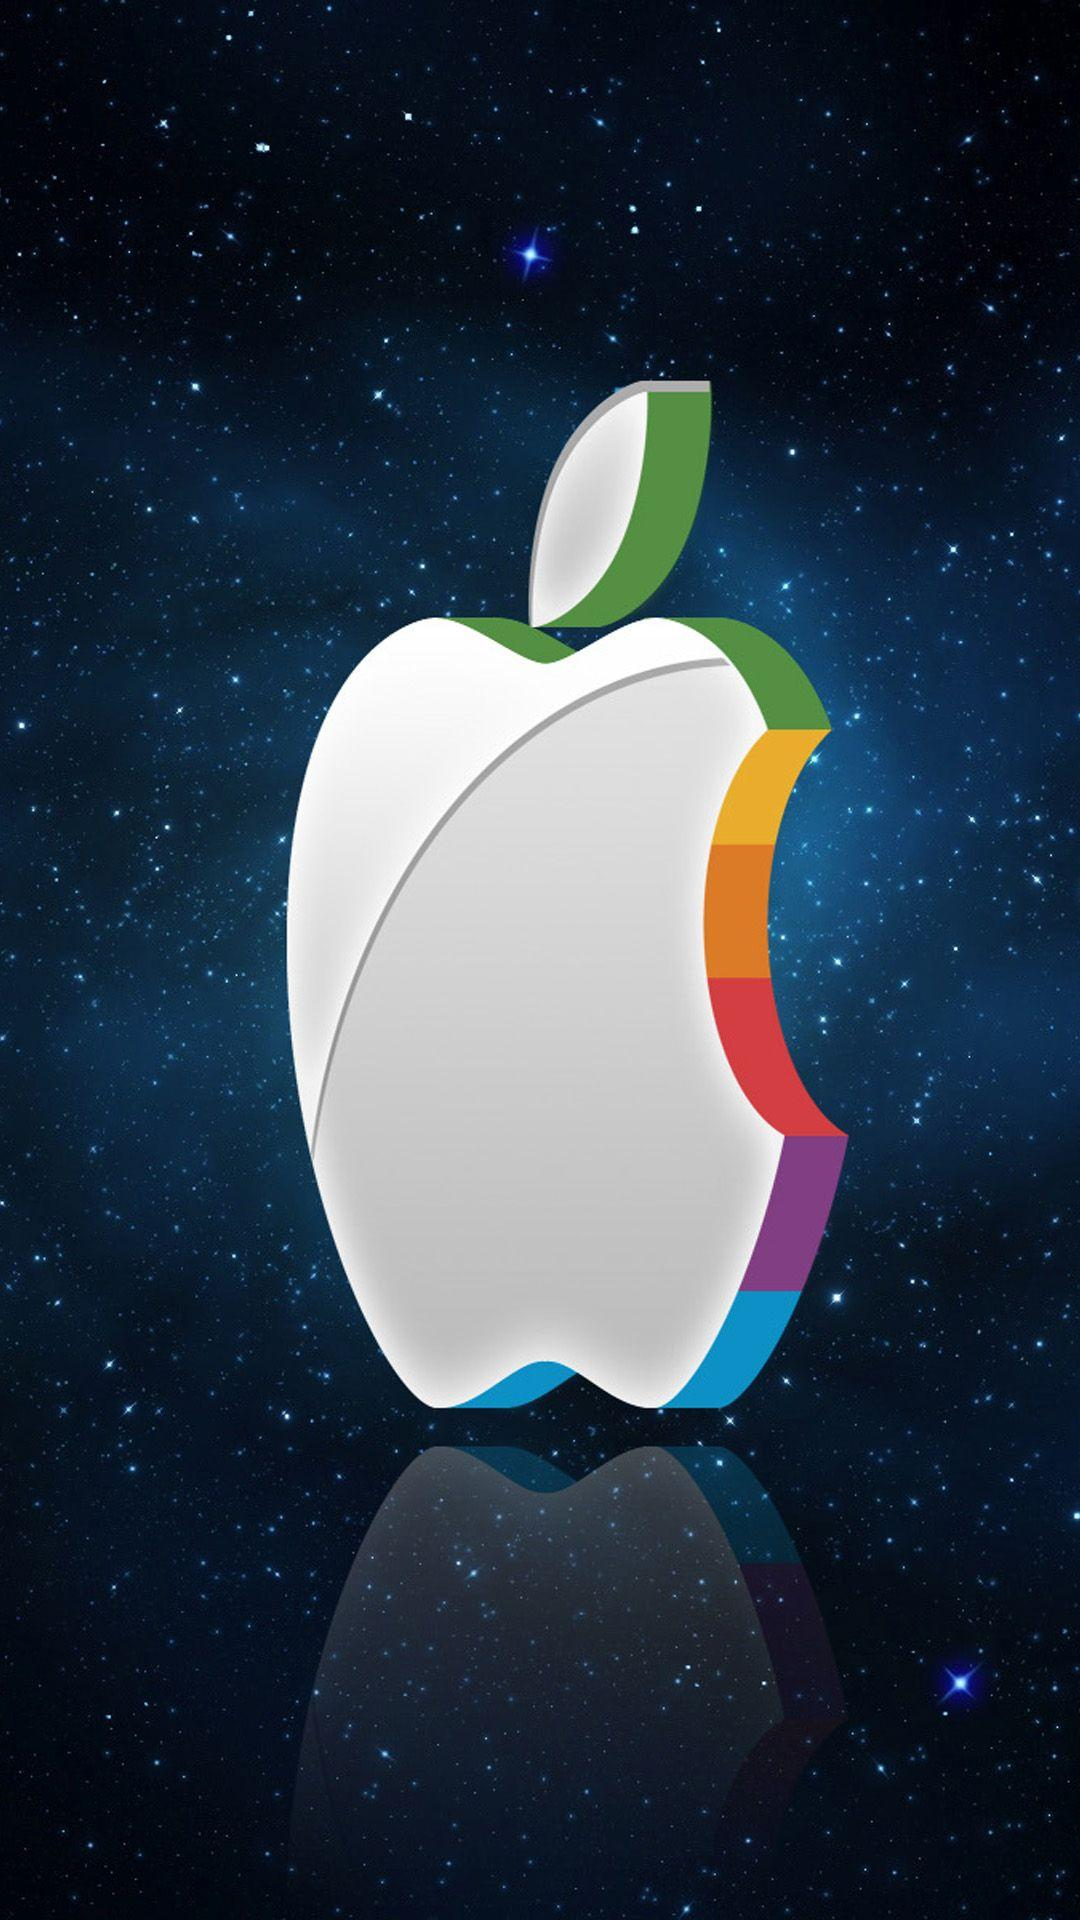 3D Apple Logo In Space Android wallpapers